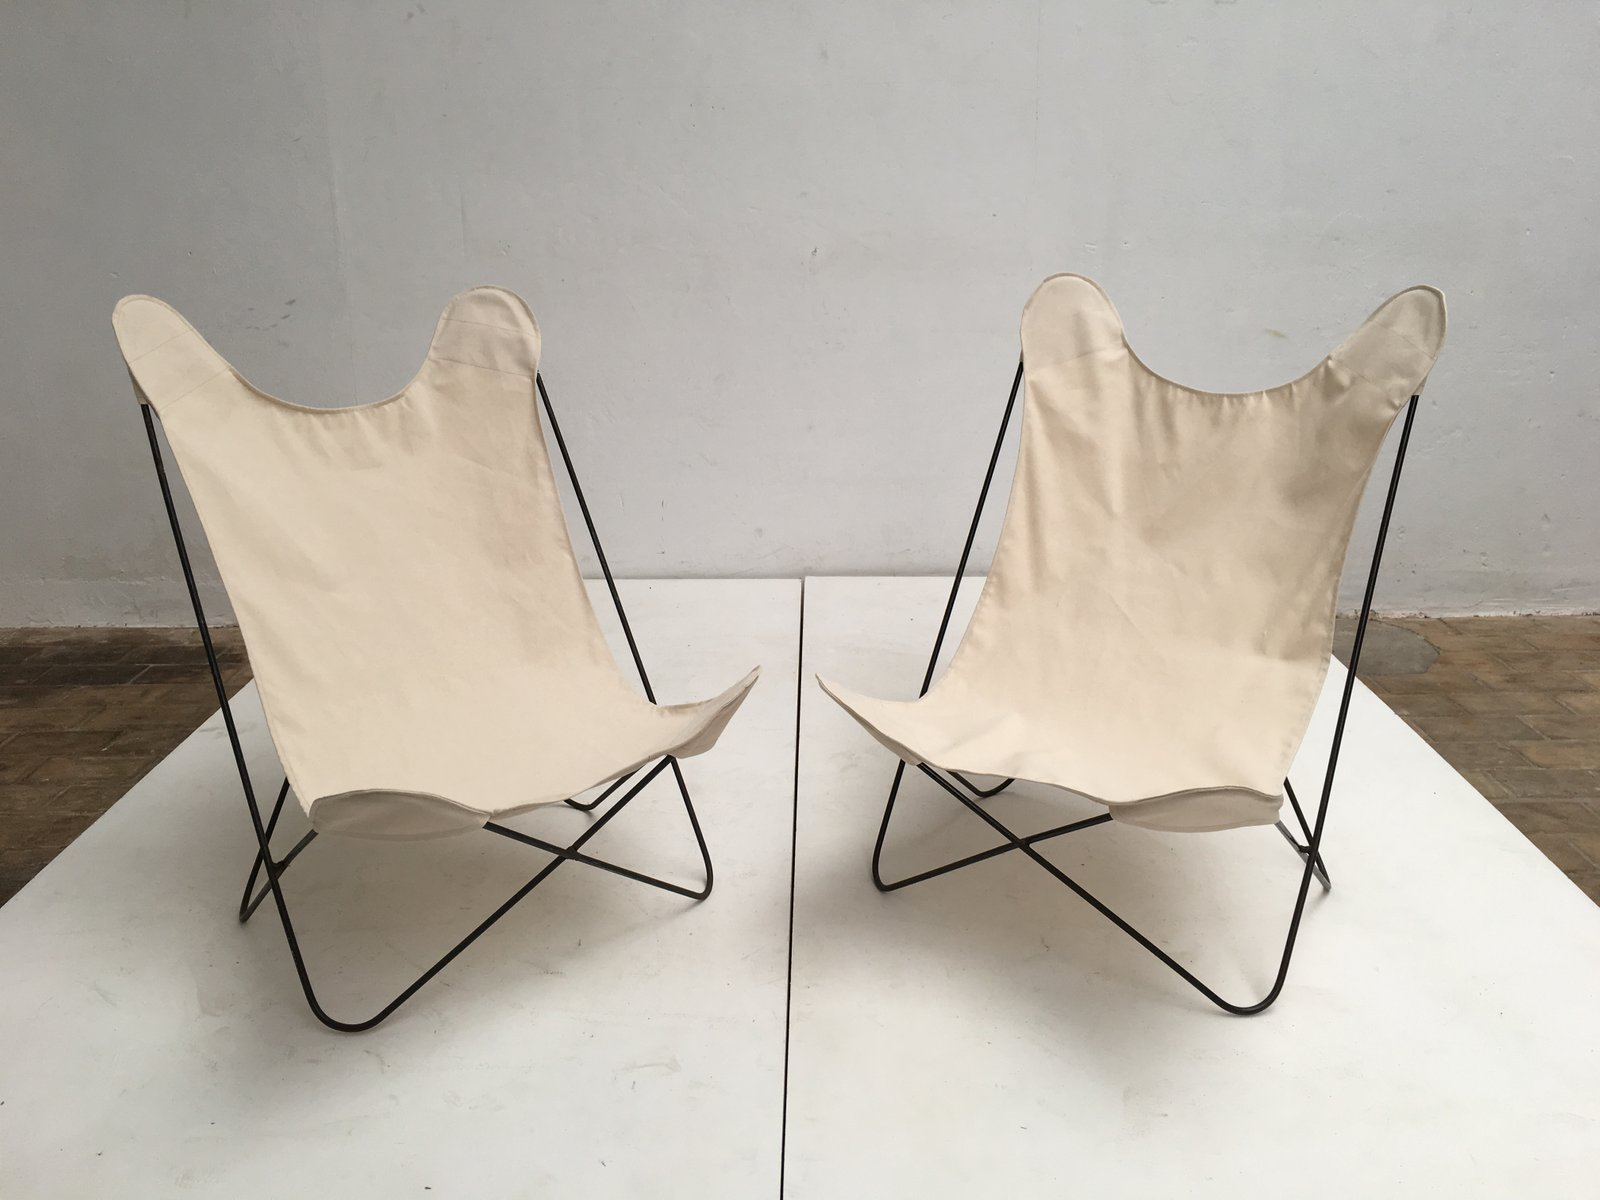 Butterfly Chairs with Canvas Seats by Jorge Ferrari Hardoy, 1960s ...